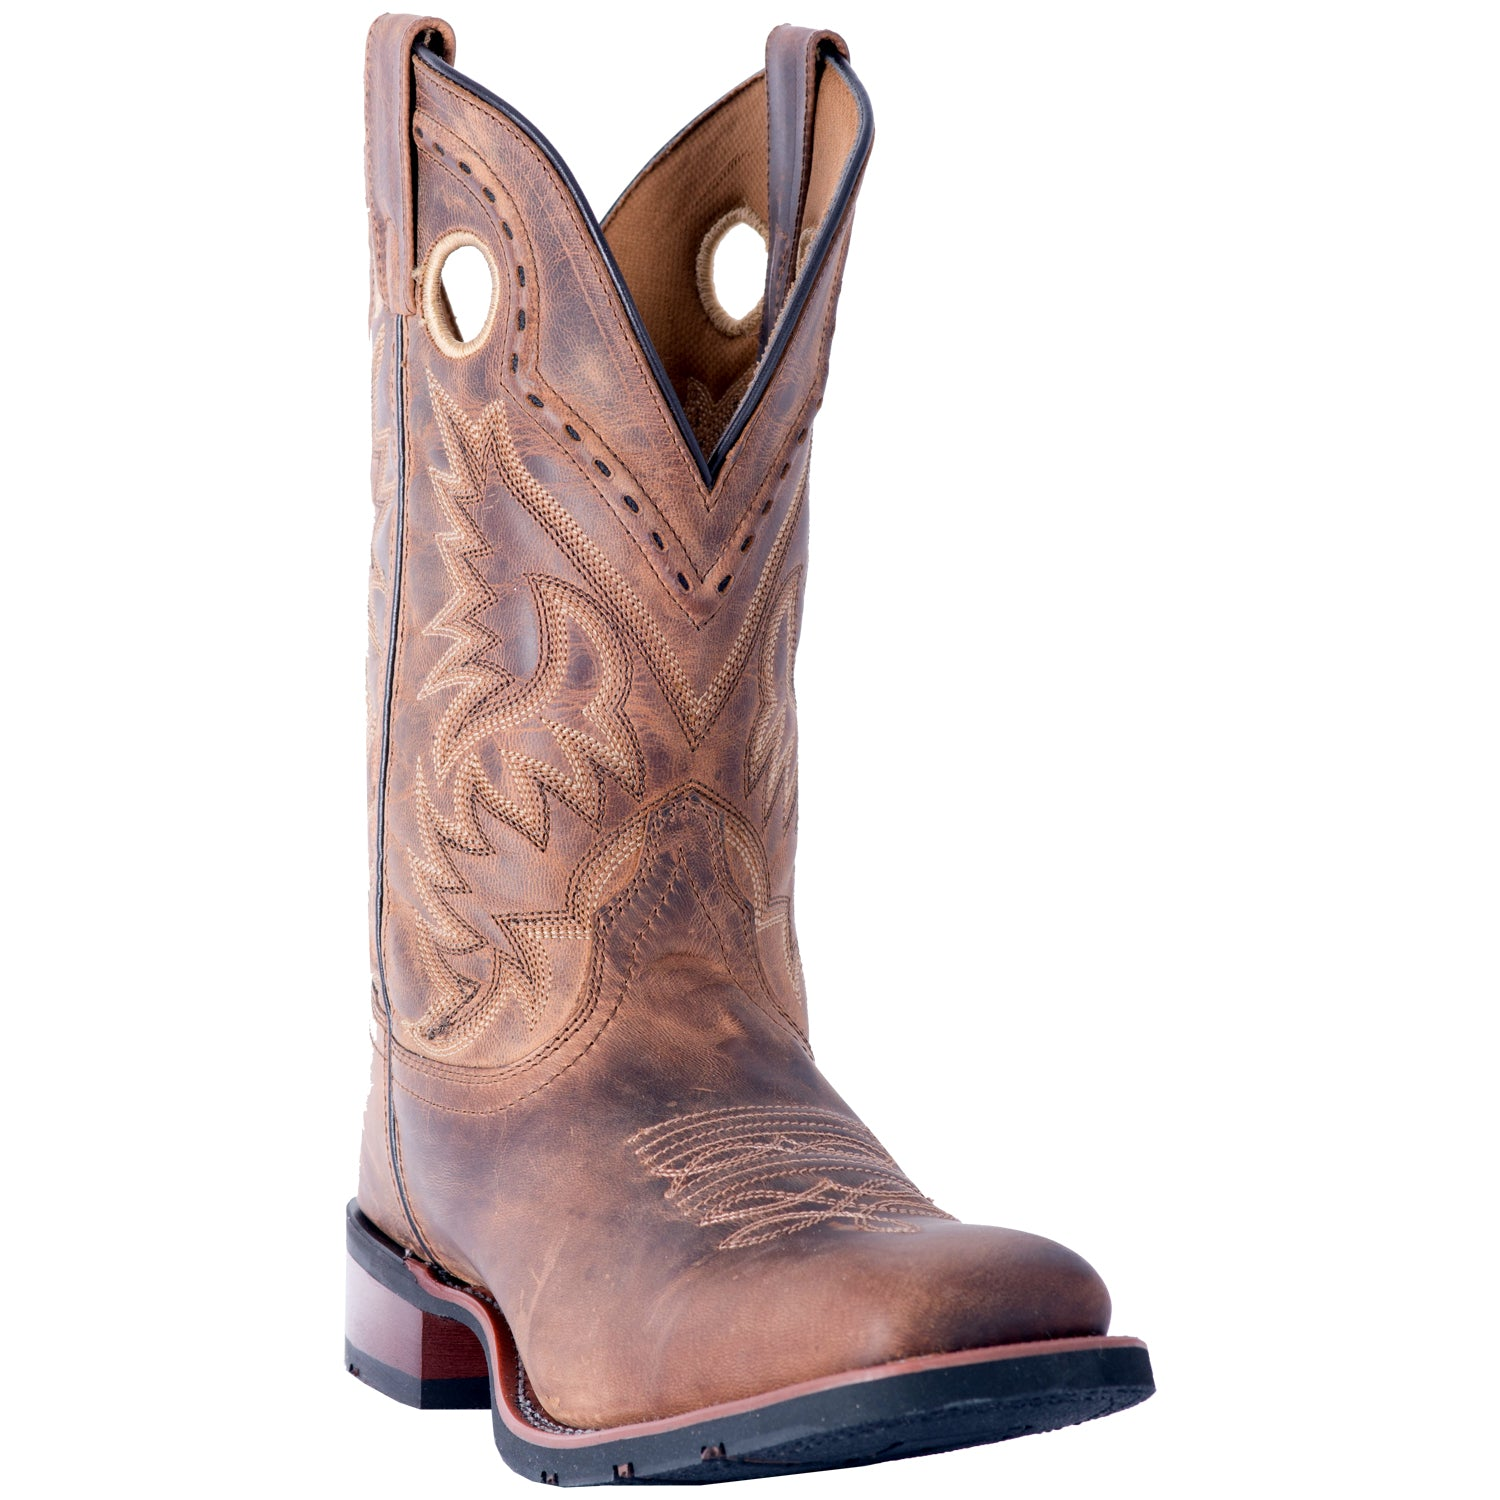 KANE LEATHER BOOT